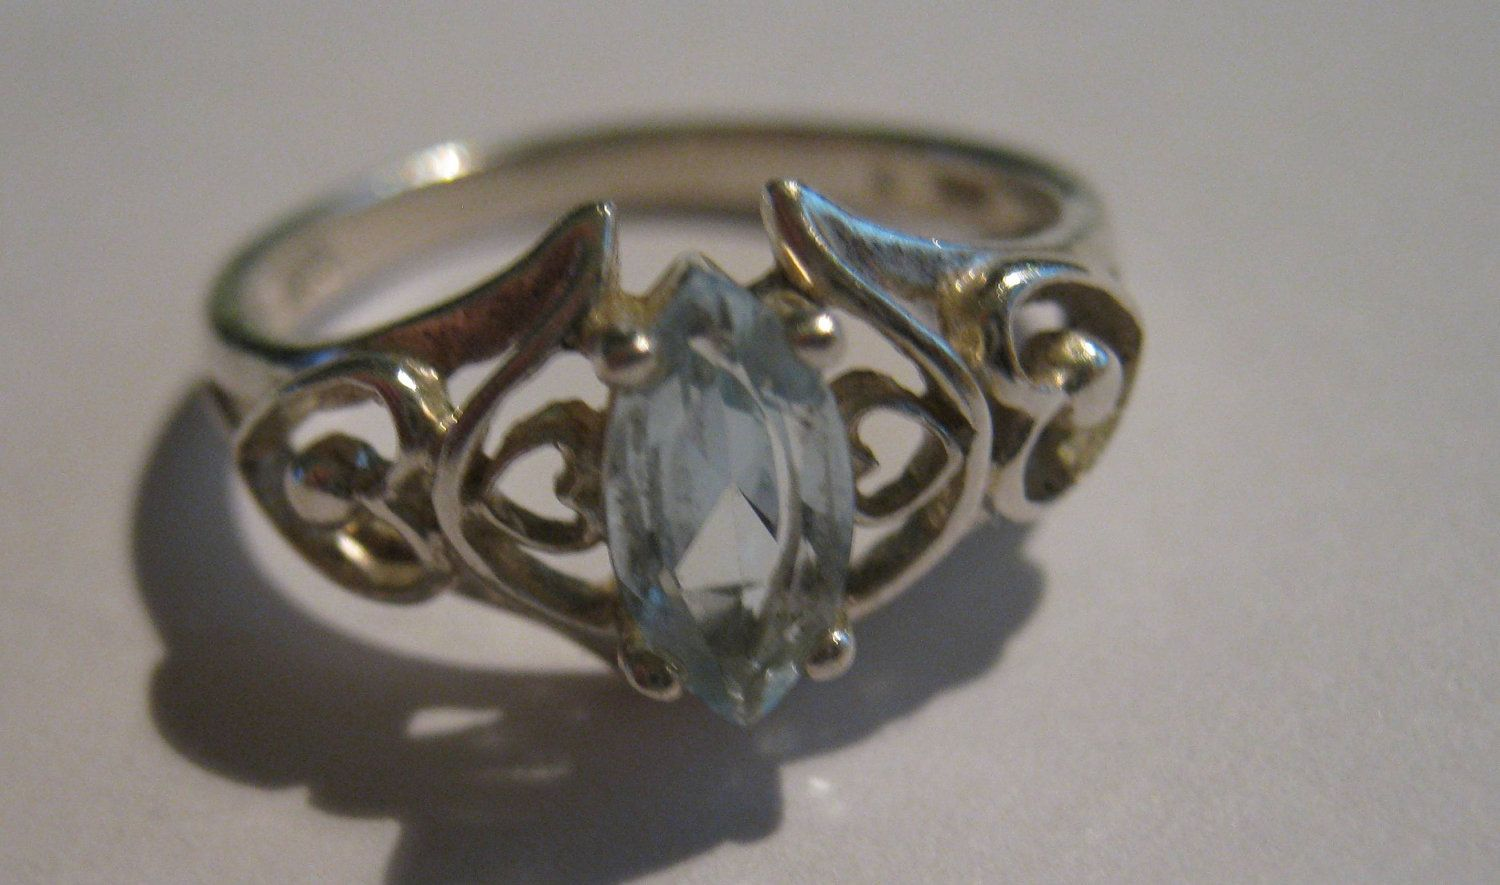 Vintage Avon Sterling Silver Ring With Aquamarine Gem